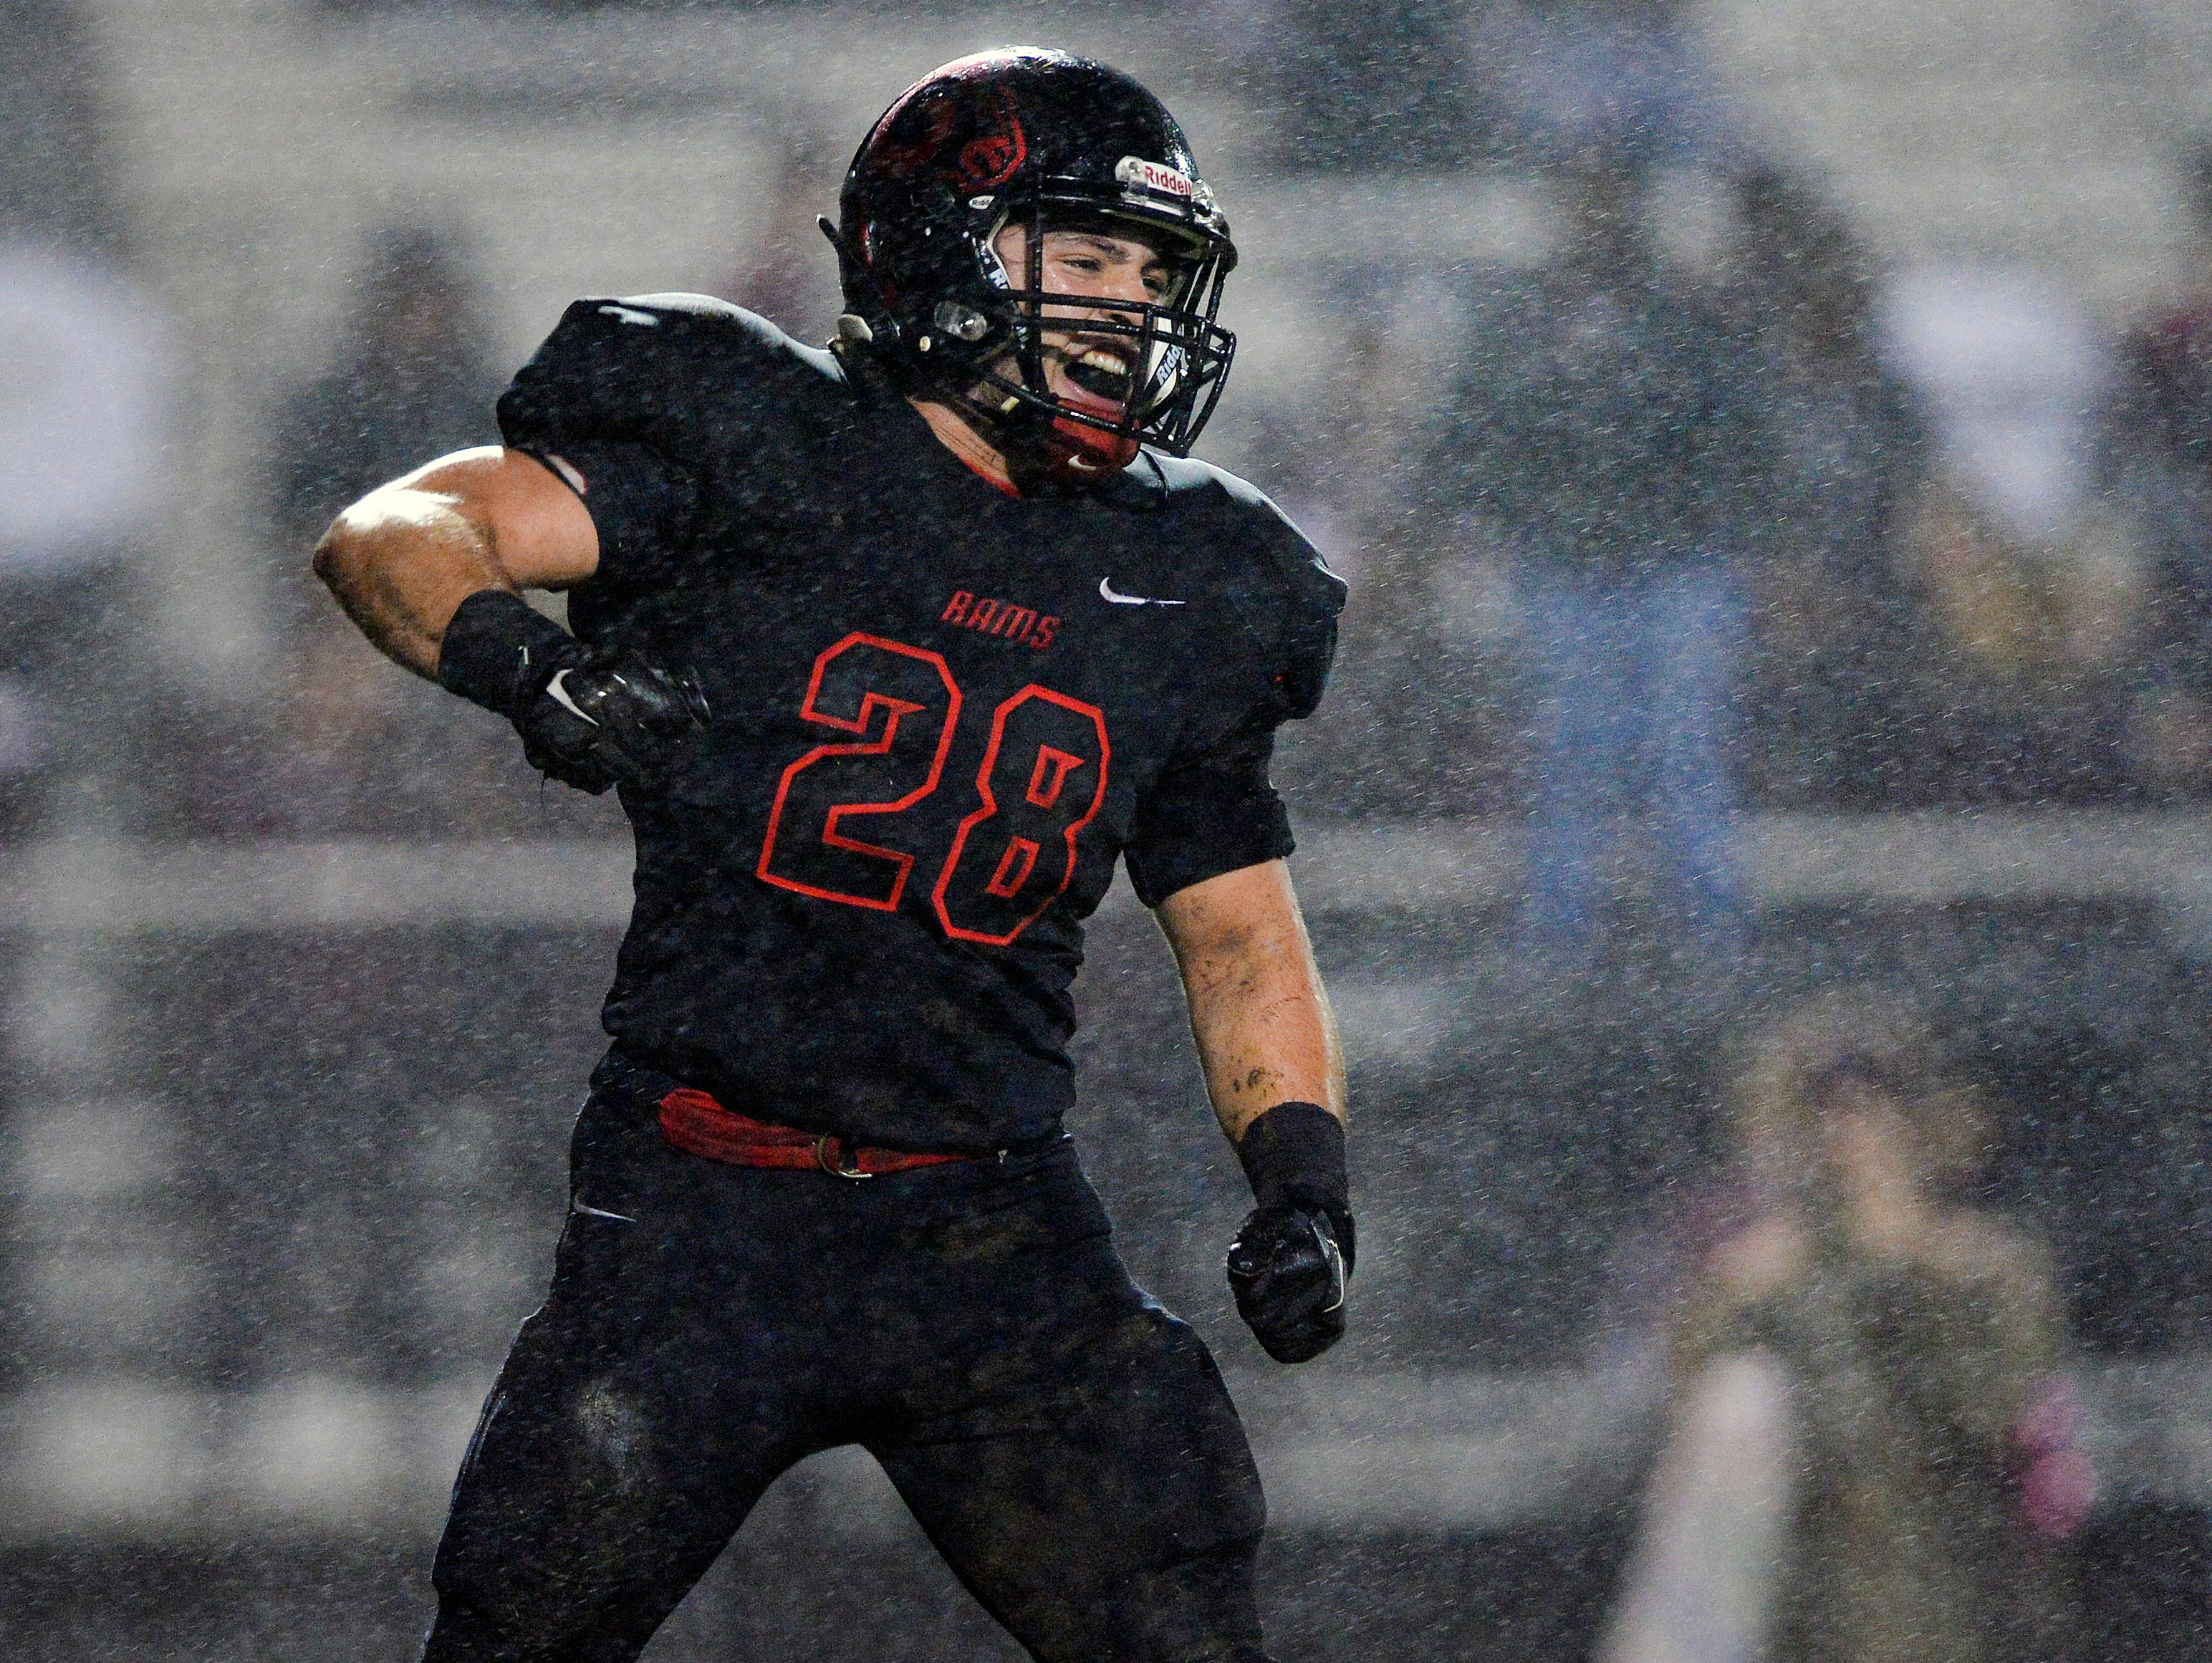 Hillcrest's Isaiah Sayegh (28) celebrates after sacking Westside quarterback Jackson Williamson (5) in a Region 1-AAAA game at Hillcrest High School on Friday, October 2, 2015.